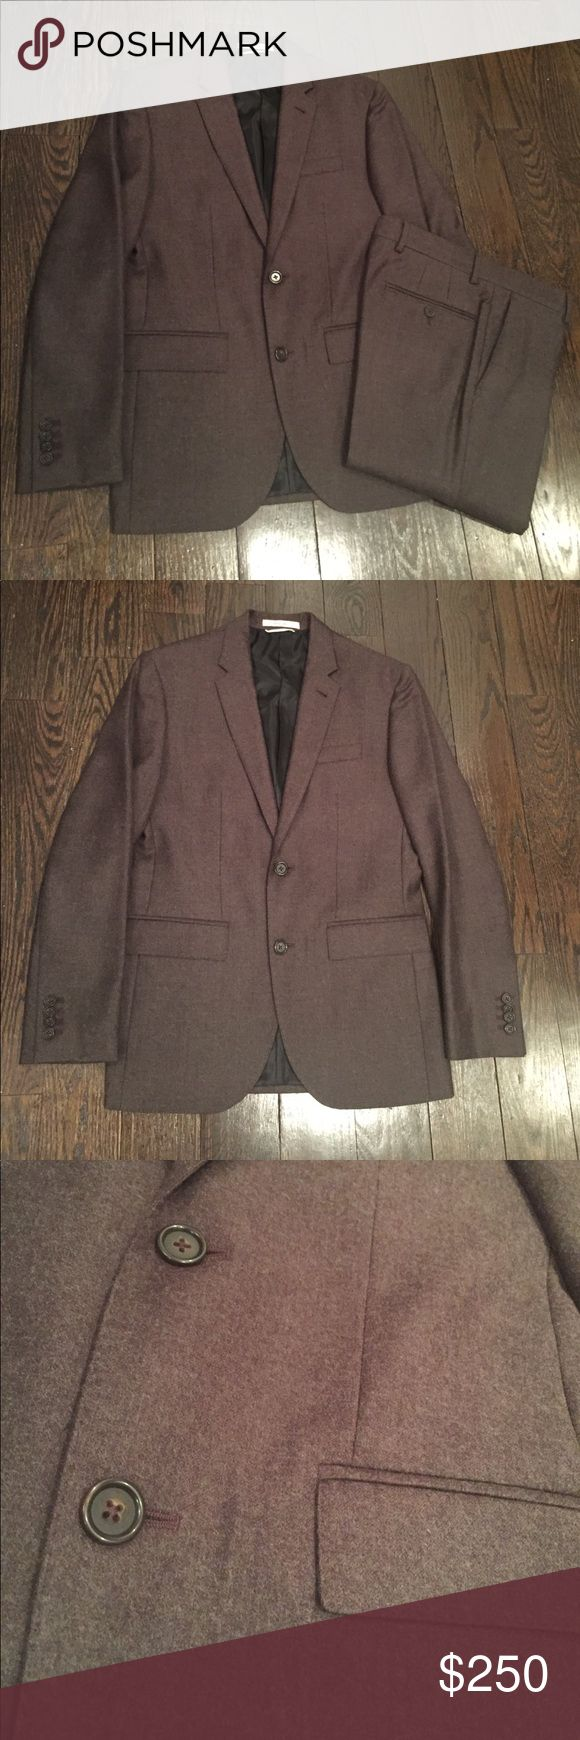 Club Monaco Slim Fit Flannel Suit 100% premium wool, this chocolate brown slim fit Flannel suit, 36S is very smooth fellas. Great condition, worn only ONE time ☝ Interior storage pockets, lined with functional button cuffs and double vented. Pants with built in cuff, button fly 28x29.5 length/ no break. Wear it to an evening wedding or pair the Blazer with my RRL Indigo Denim (see in closet) for a dinner party. Let's go  Club Monaco Suits & Blazers Suits